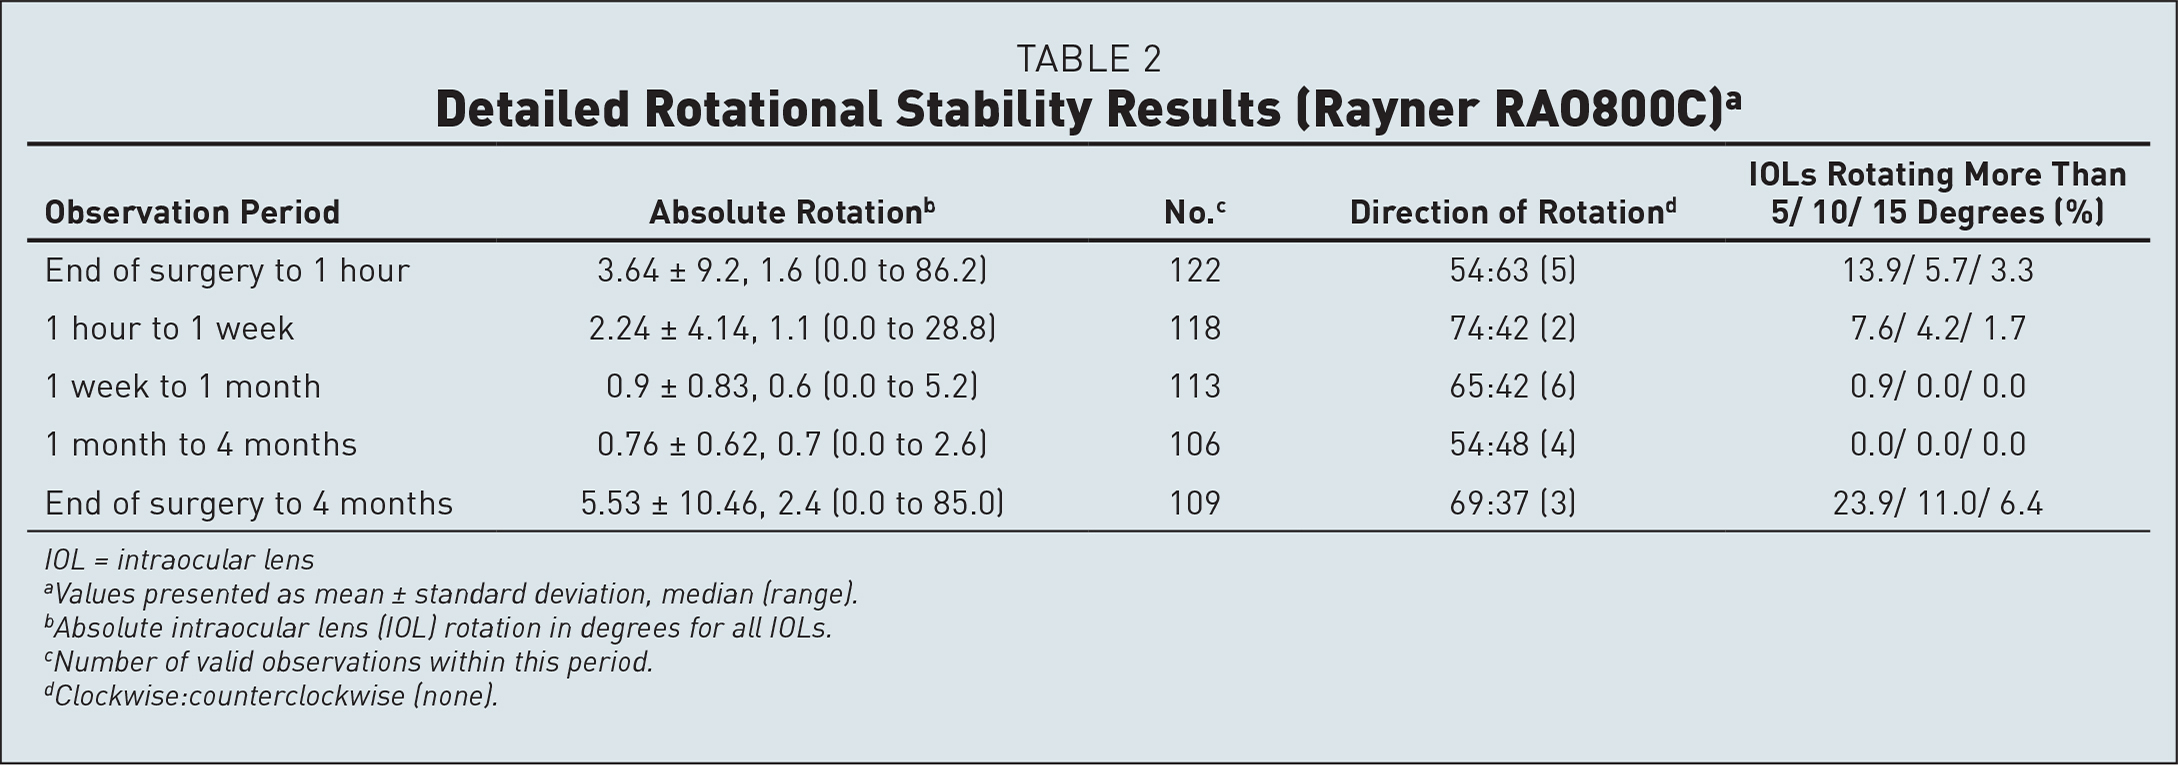 Detailed Rotational Stability Results (Rayner RAO800C)a